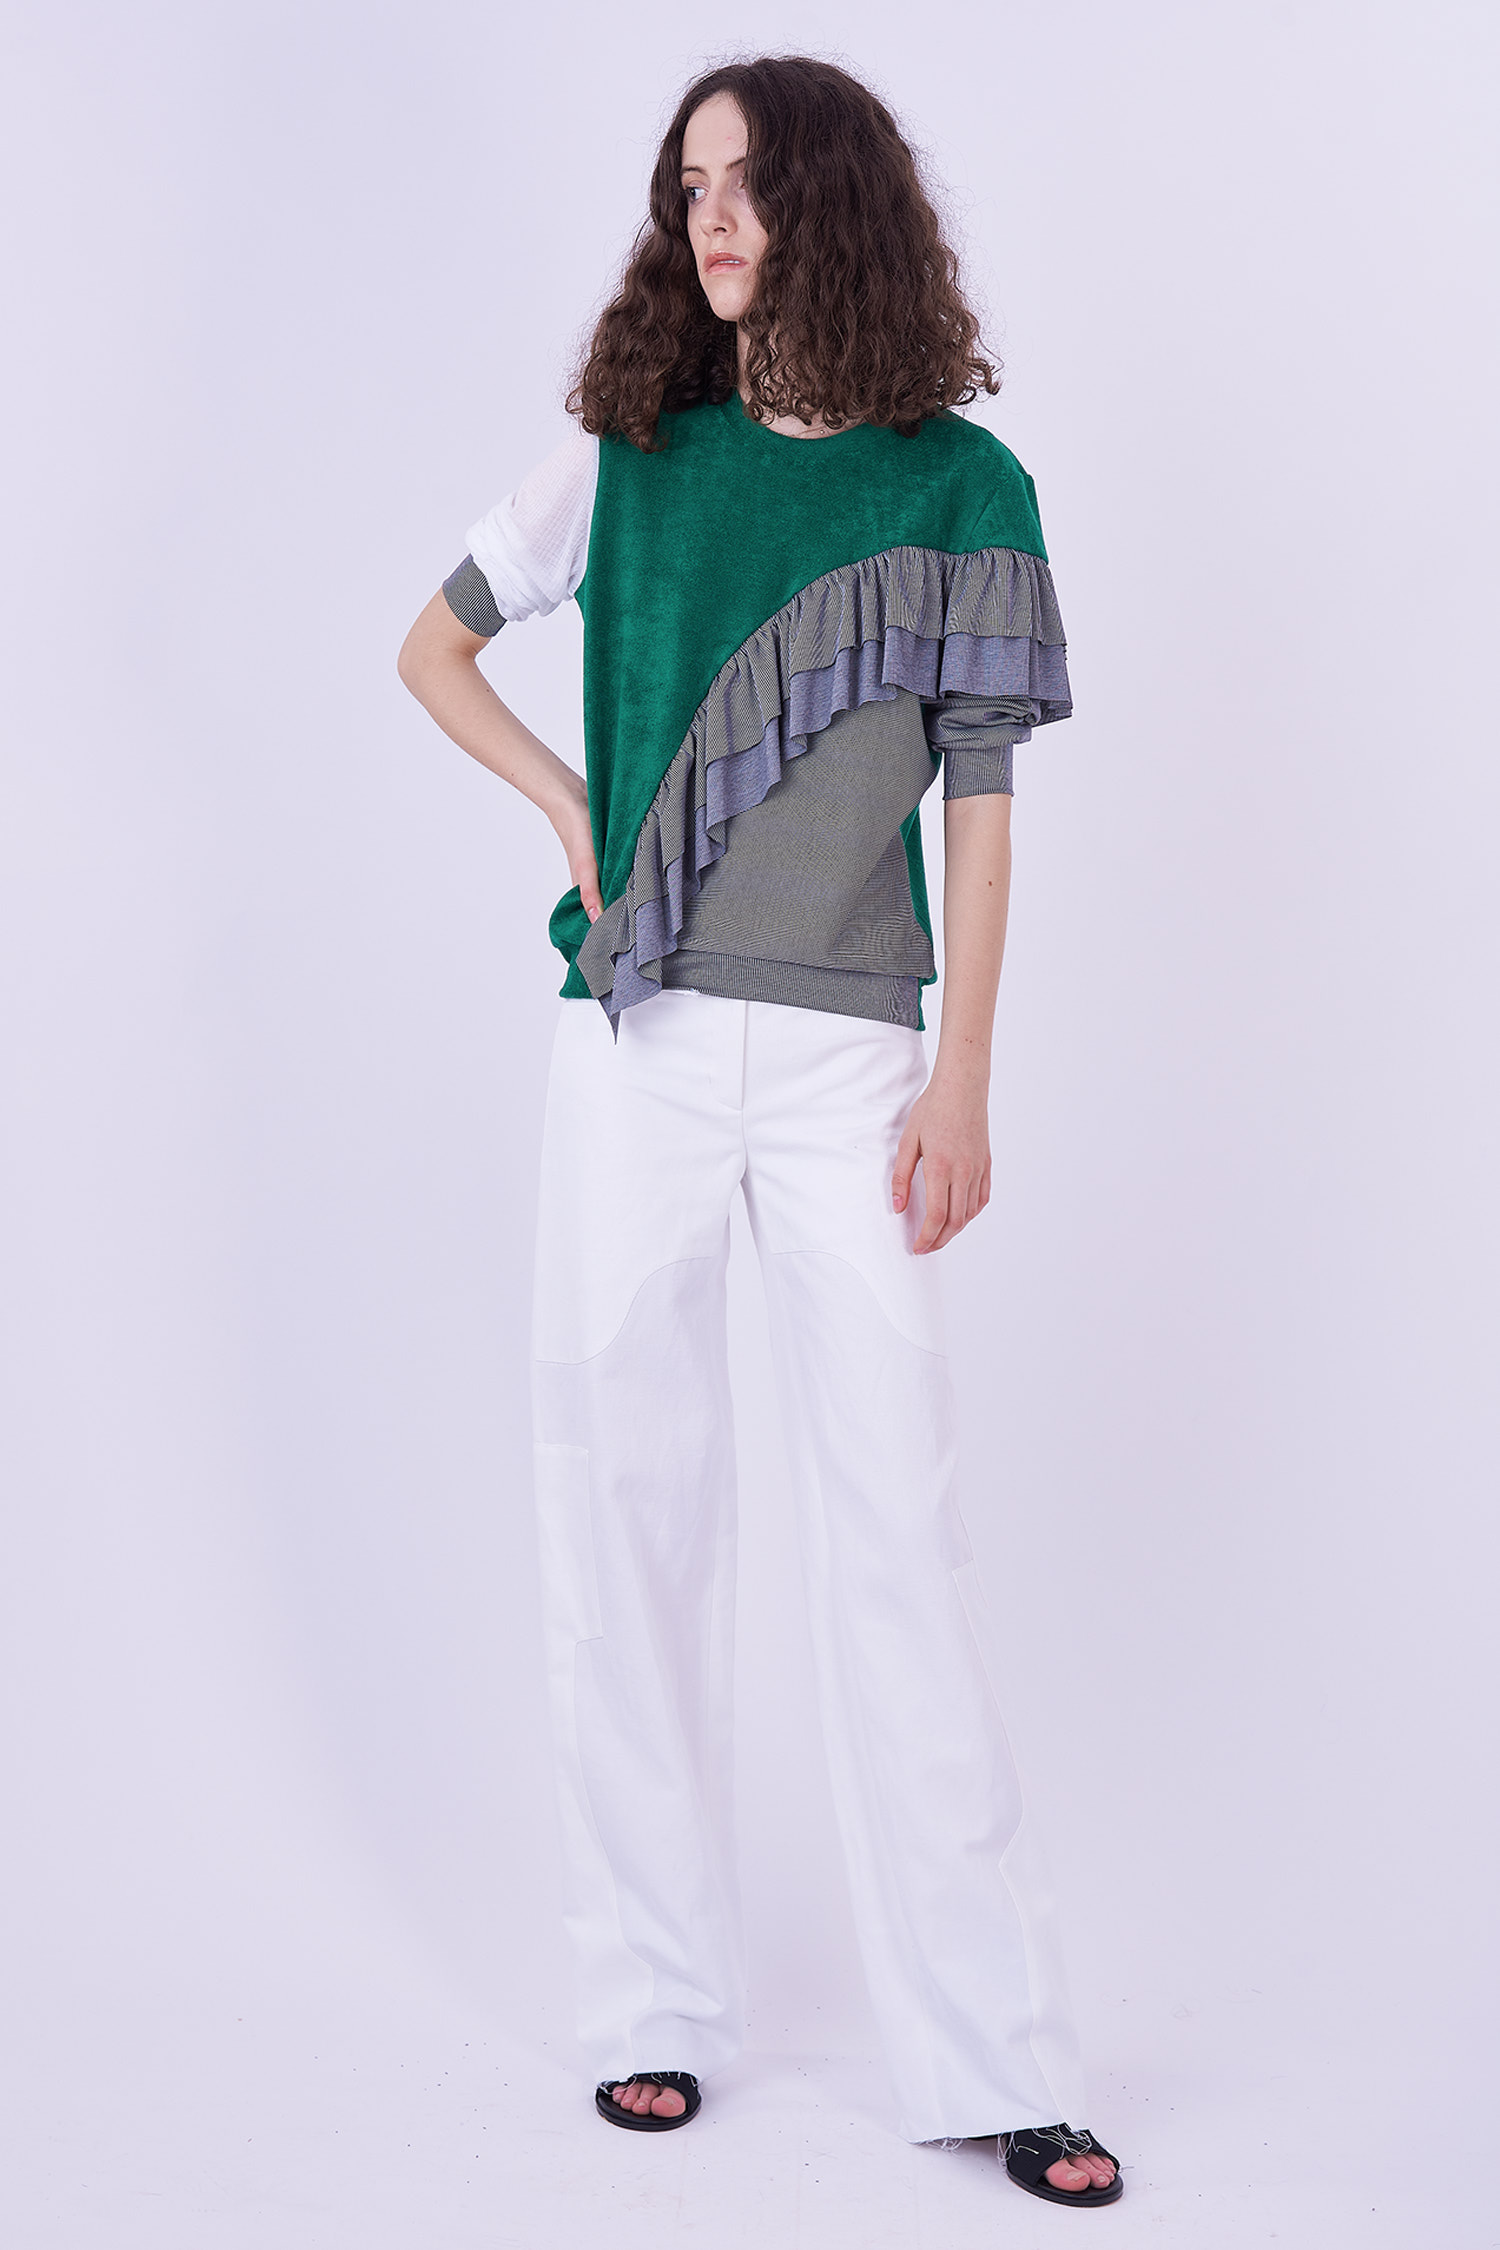 Acephala Ps2020 Green Grey Flounce Patchwork Blouse Bluzka Falbana White Trousers Biale Spodnie Side